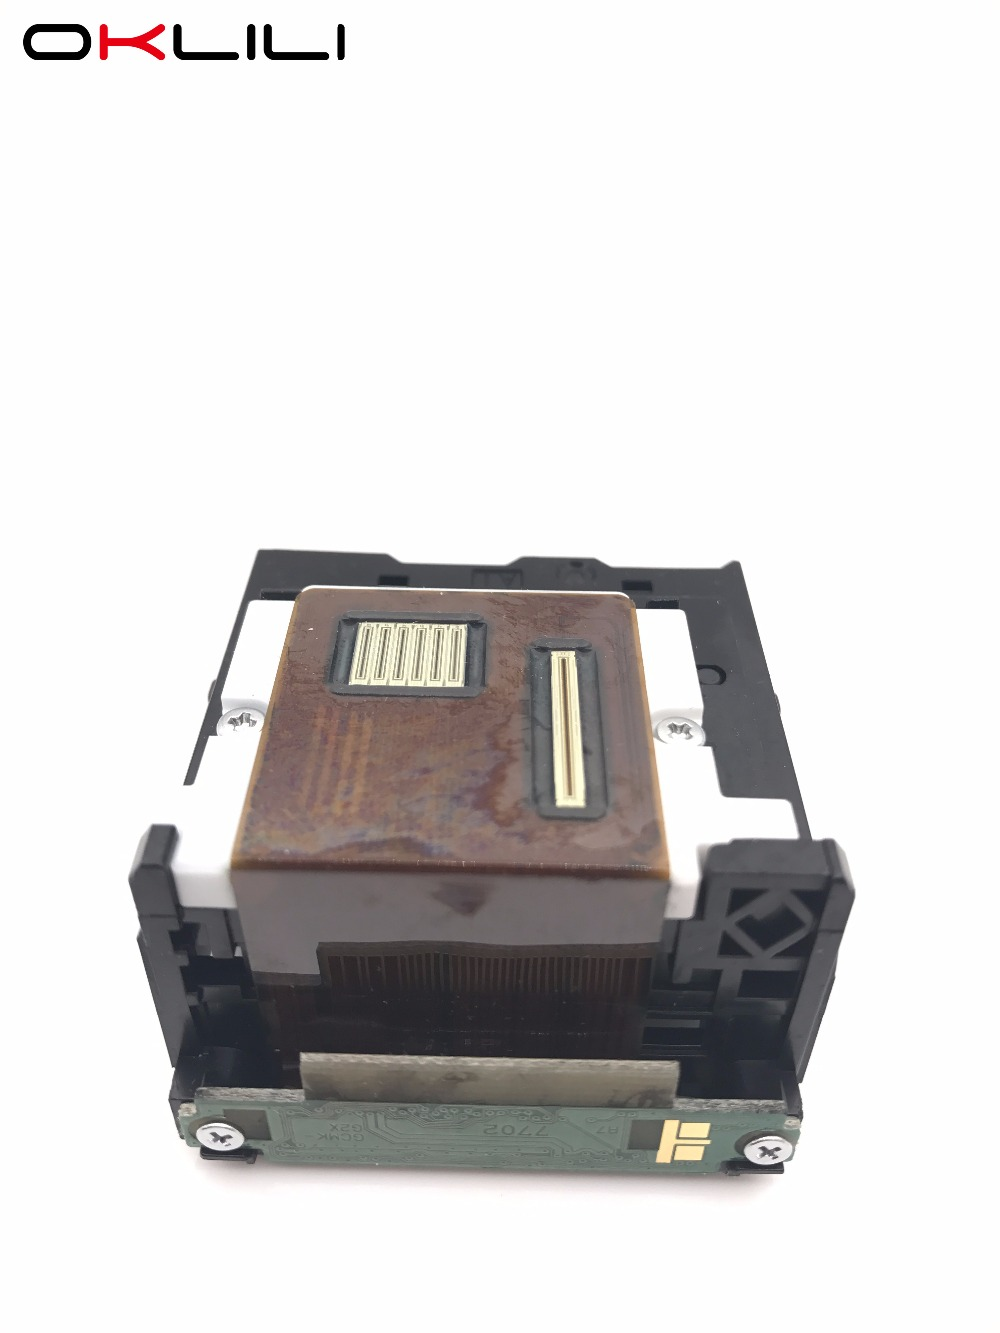 OKLILI ORIGINAL QY6-0068 QY6-0068-000 Printhead Print Head Printer Head for Canon PIXMA iP100<br>